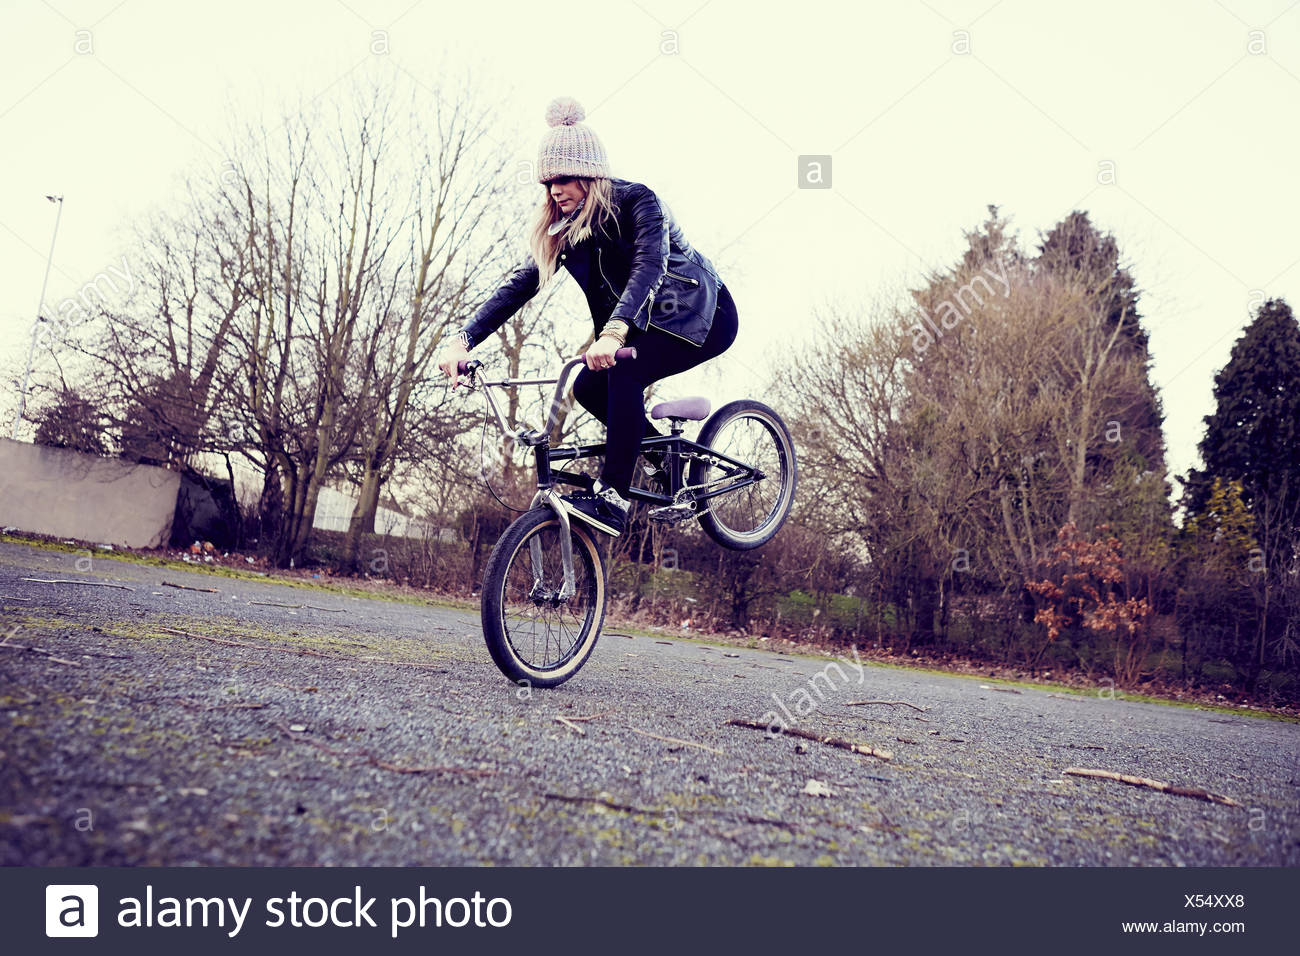 Female BMX rider doing BMX trick on wasteland - Stock Image